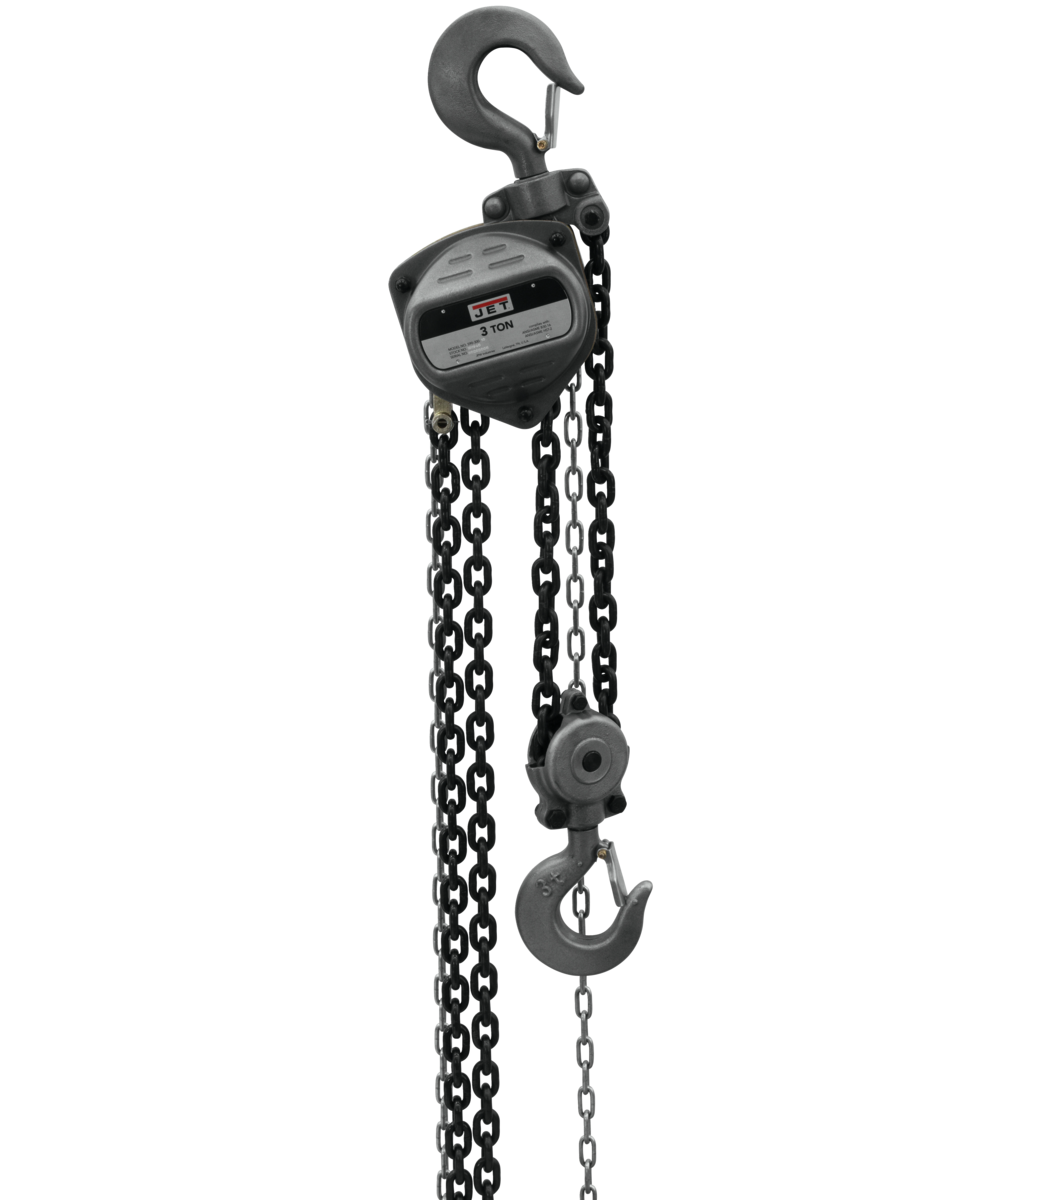 S90-300-20, 3-Ton Hand Chain Hoist With 20' Lift